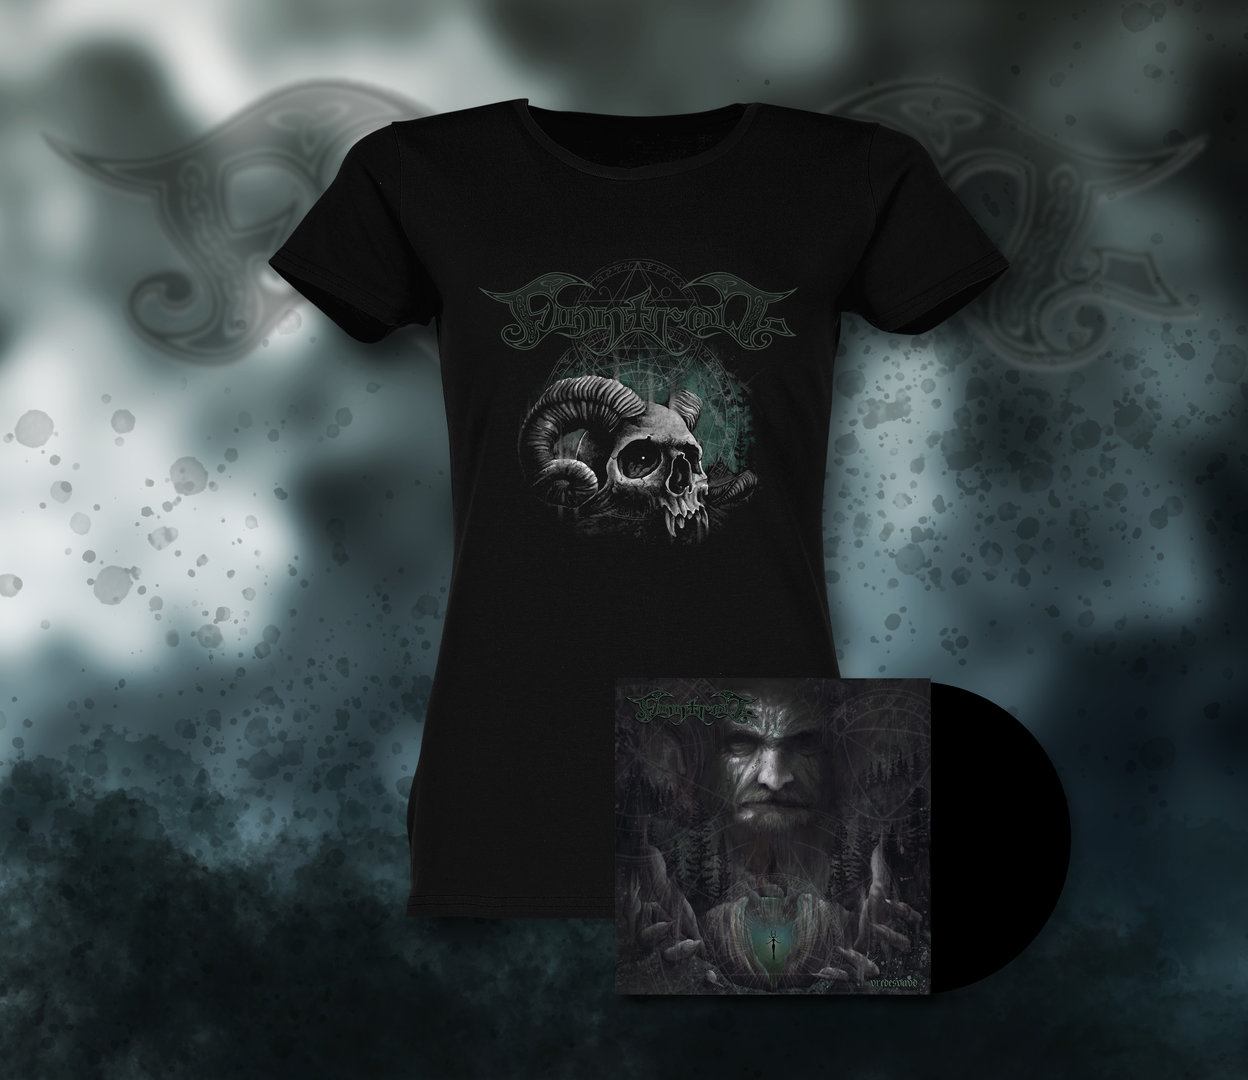 Finntroll: Vredesvävd, Gatefold Vinyl LP & Lady Fit Shirt Bundle